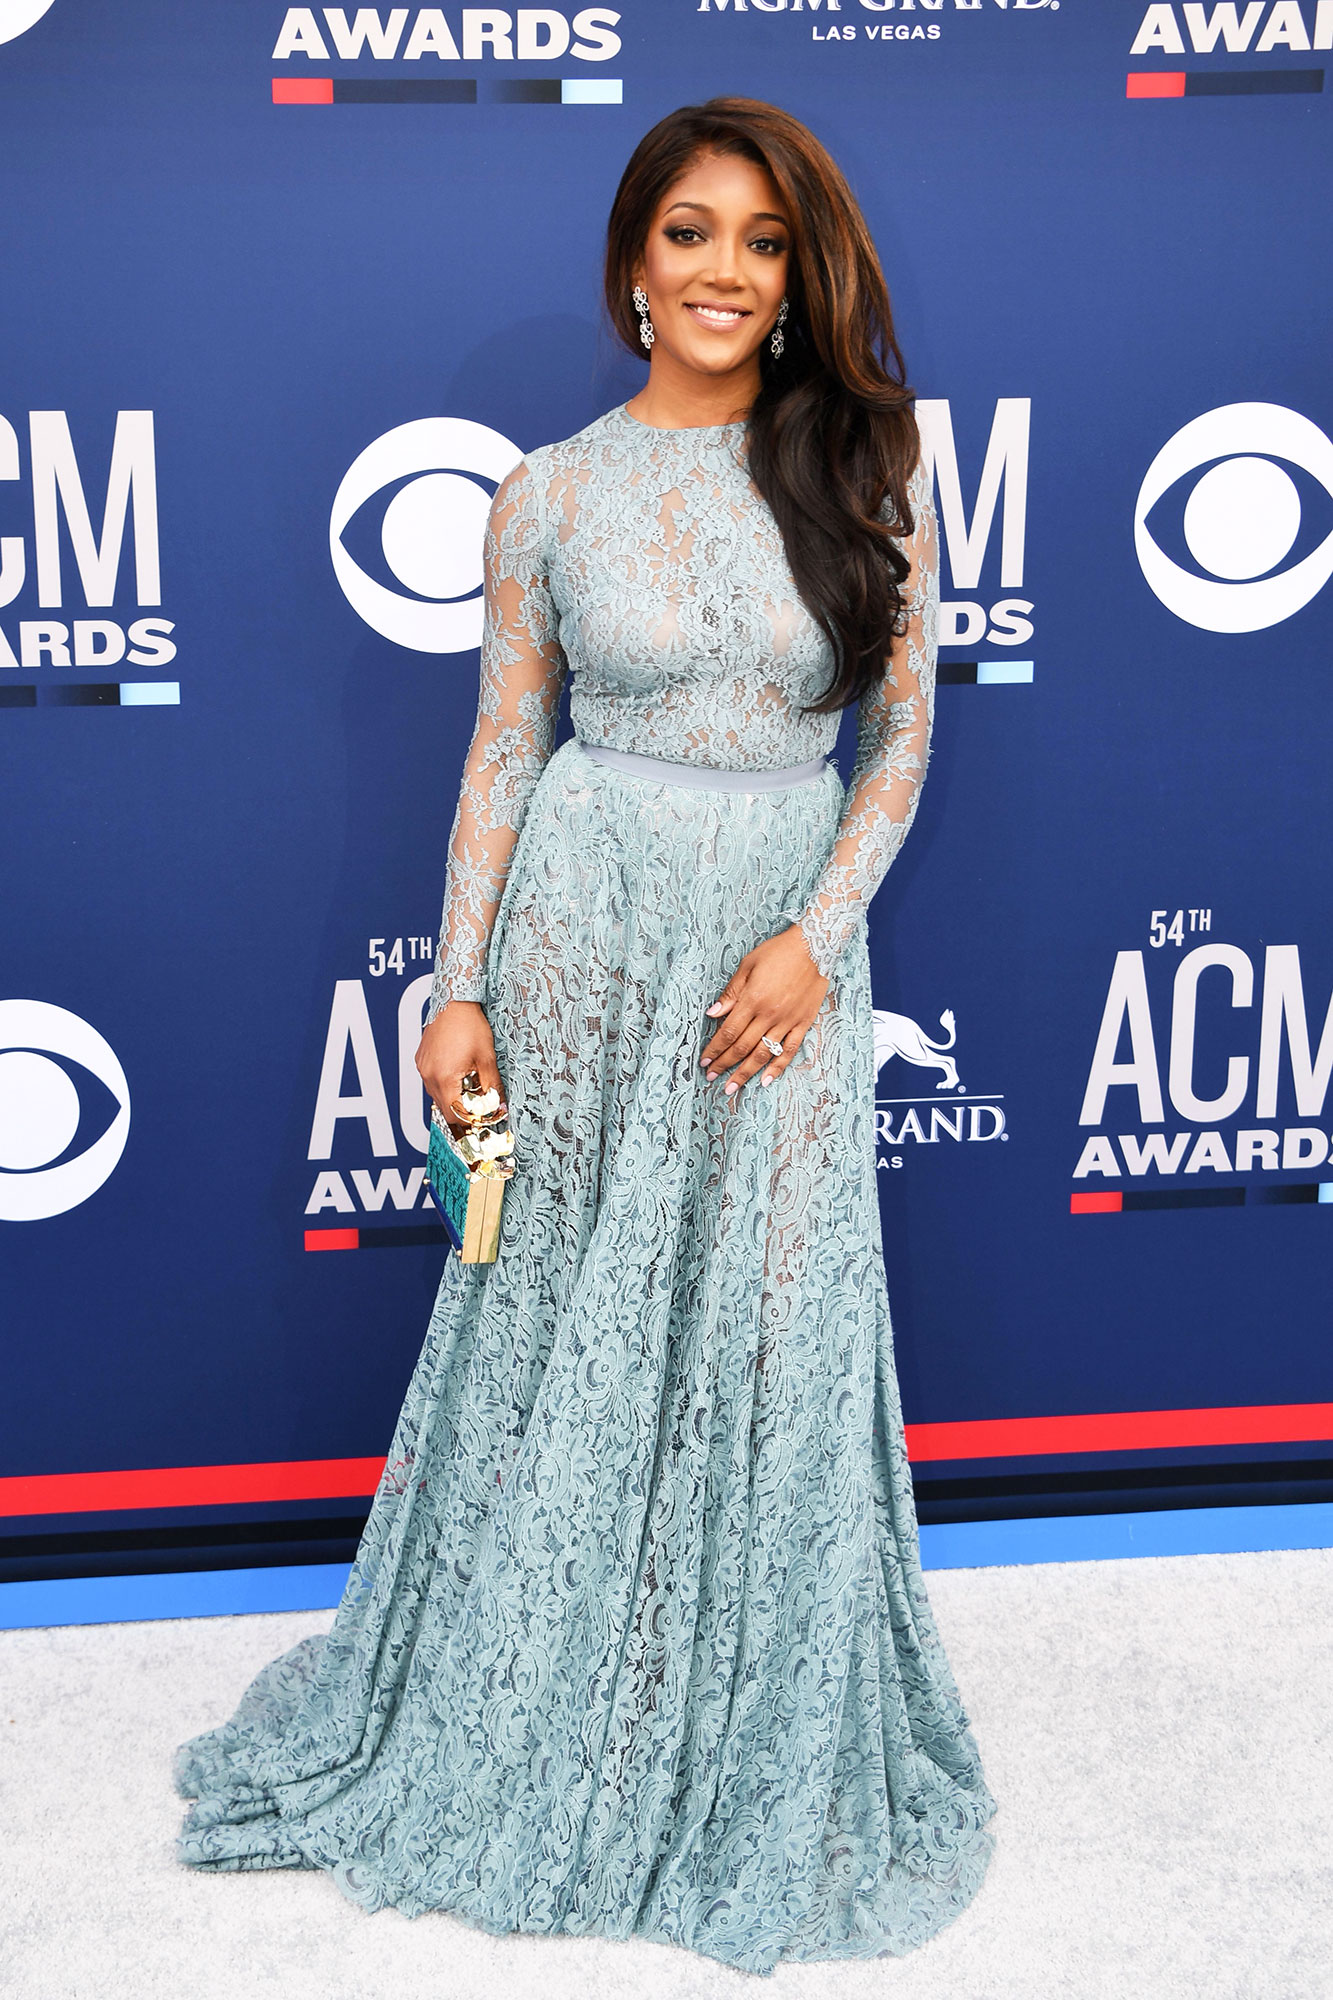 """Mickey Guyton The Best Looks From the Country Music Awards Red Carpet - Making lace a trend, the """"Better Than You Left Me"""" songstress wore a powder blue frock that was to die for."""